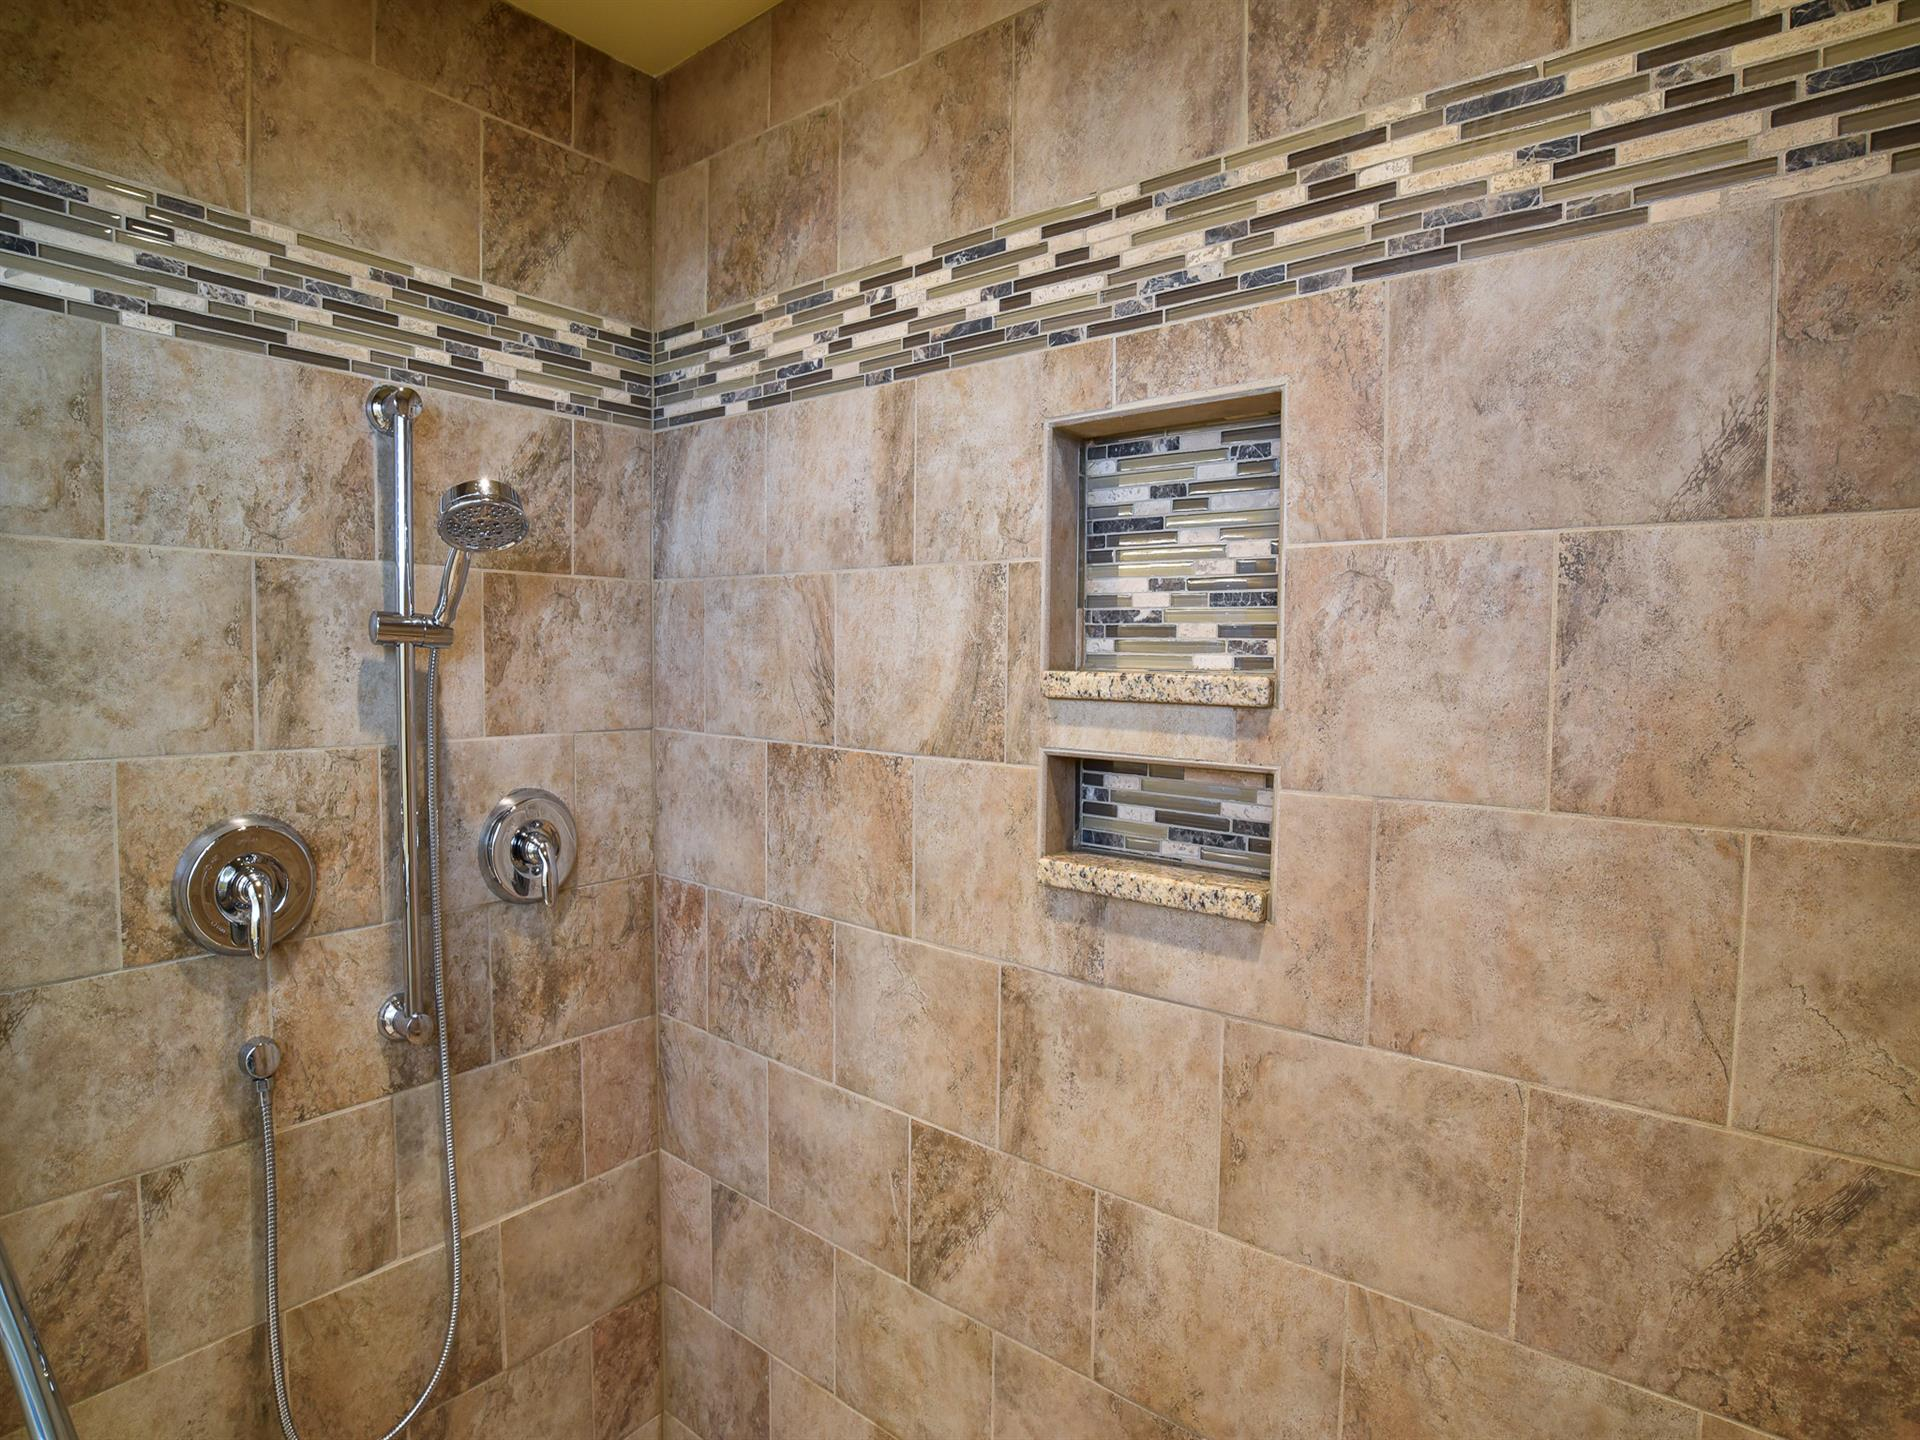 a fancy looking shower area with tiles